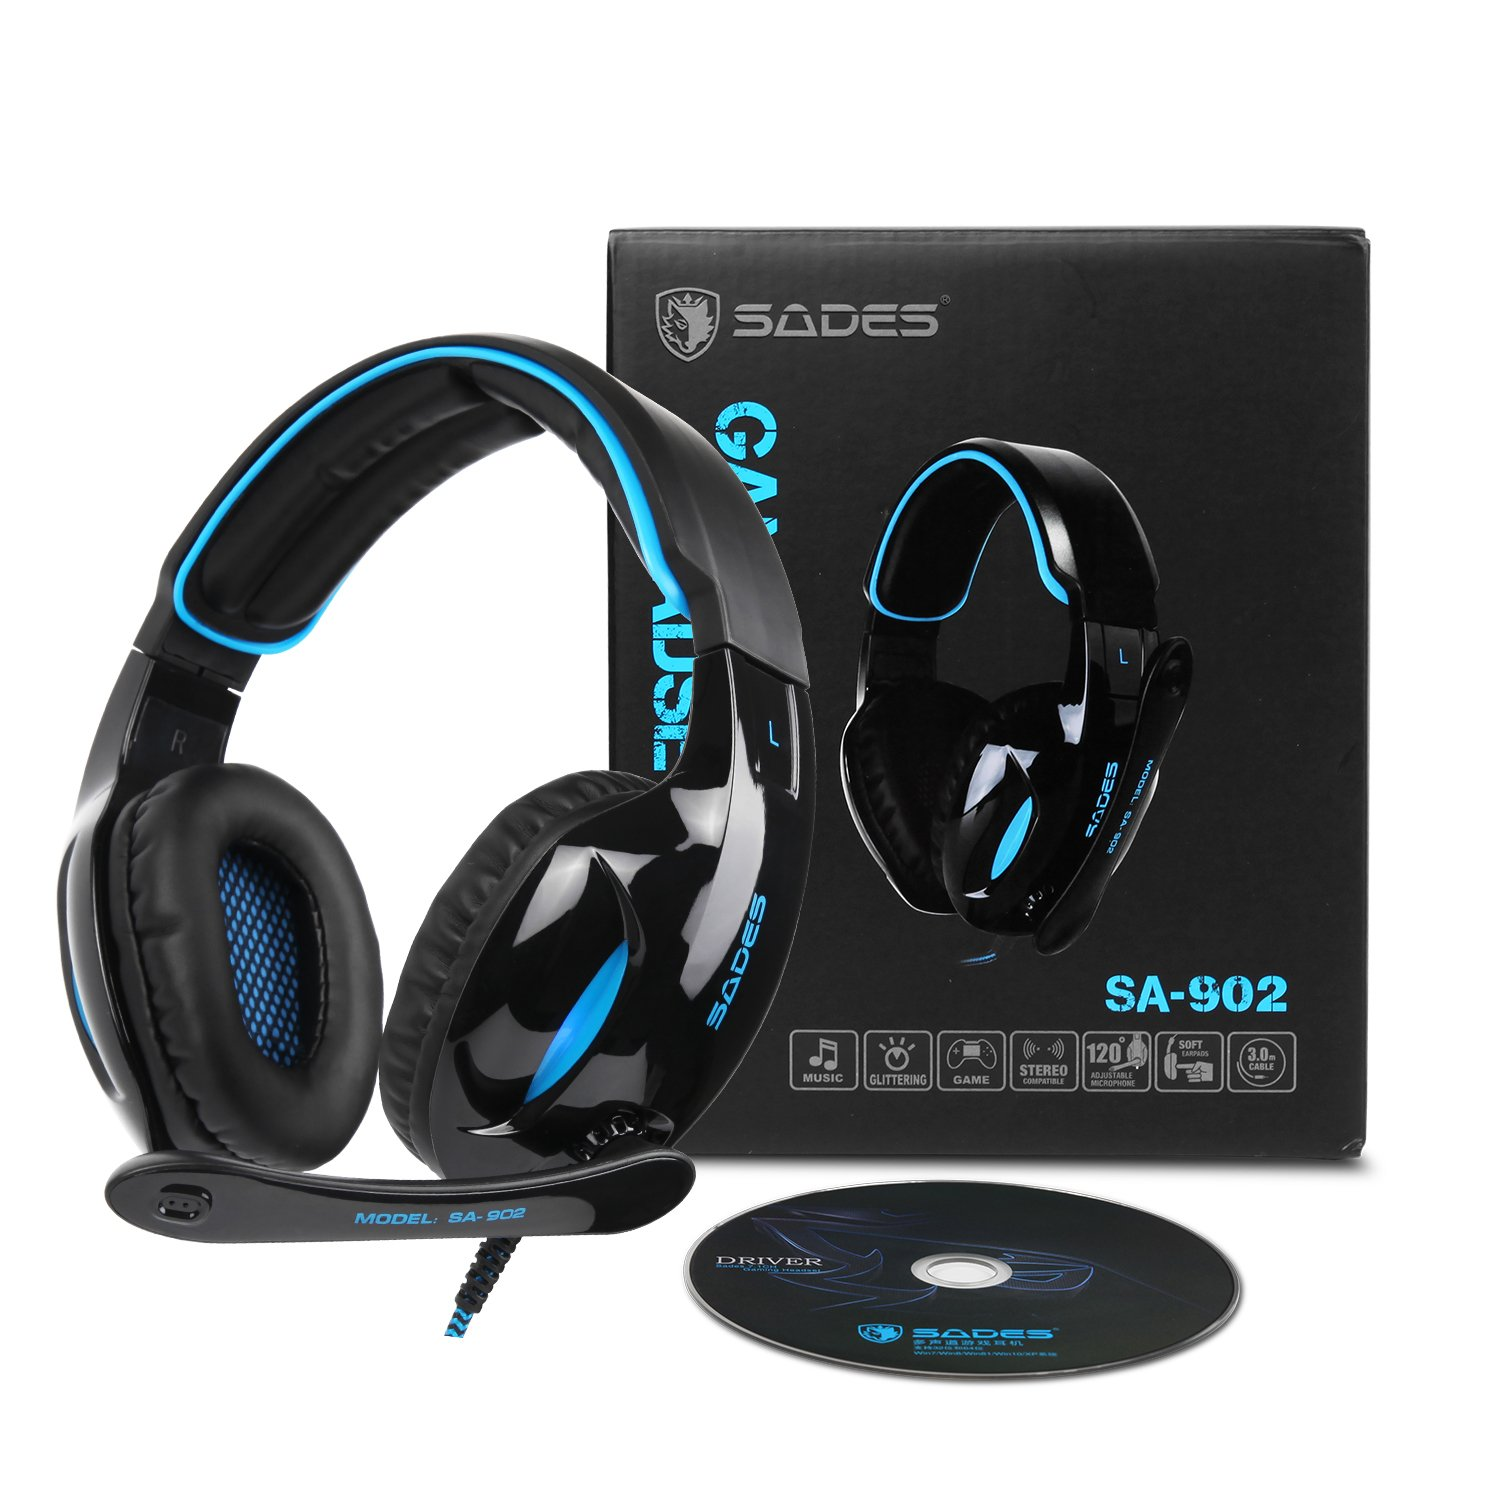 SADES SA902 Gaming Headset Headphone Stereo 7 1 Channel USB wired with Mic  Volume Control LED Light